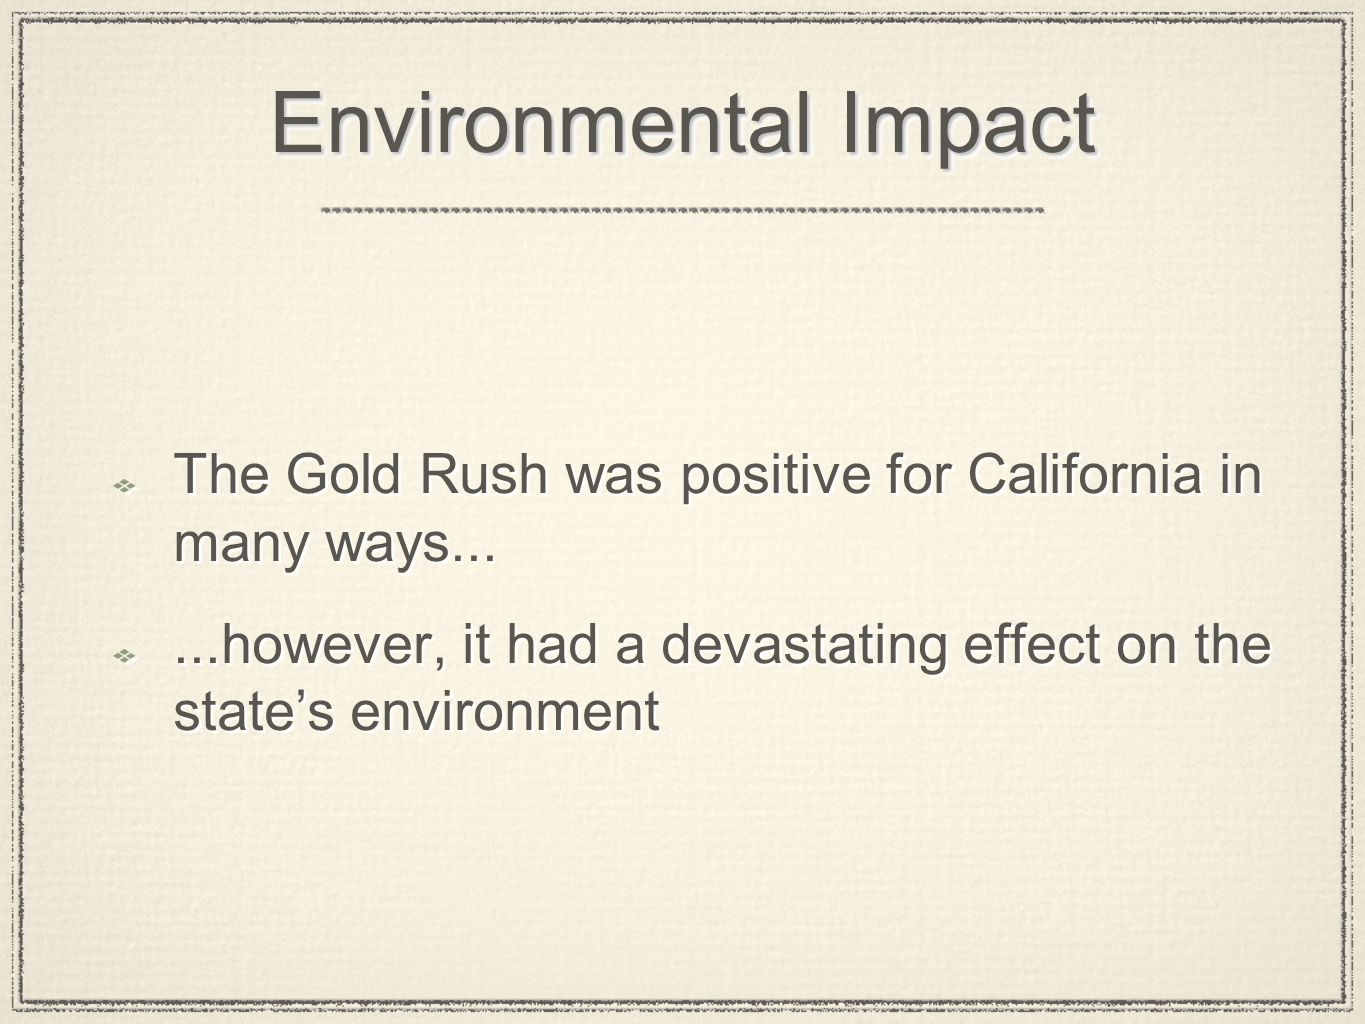 Environmental Impact The Gold Rush was positive for California in many ways......however, it had a devastating effect on the states environment The Go